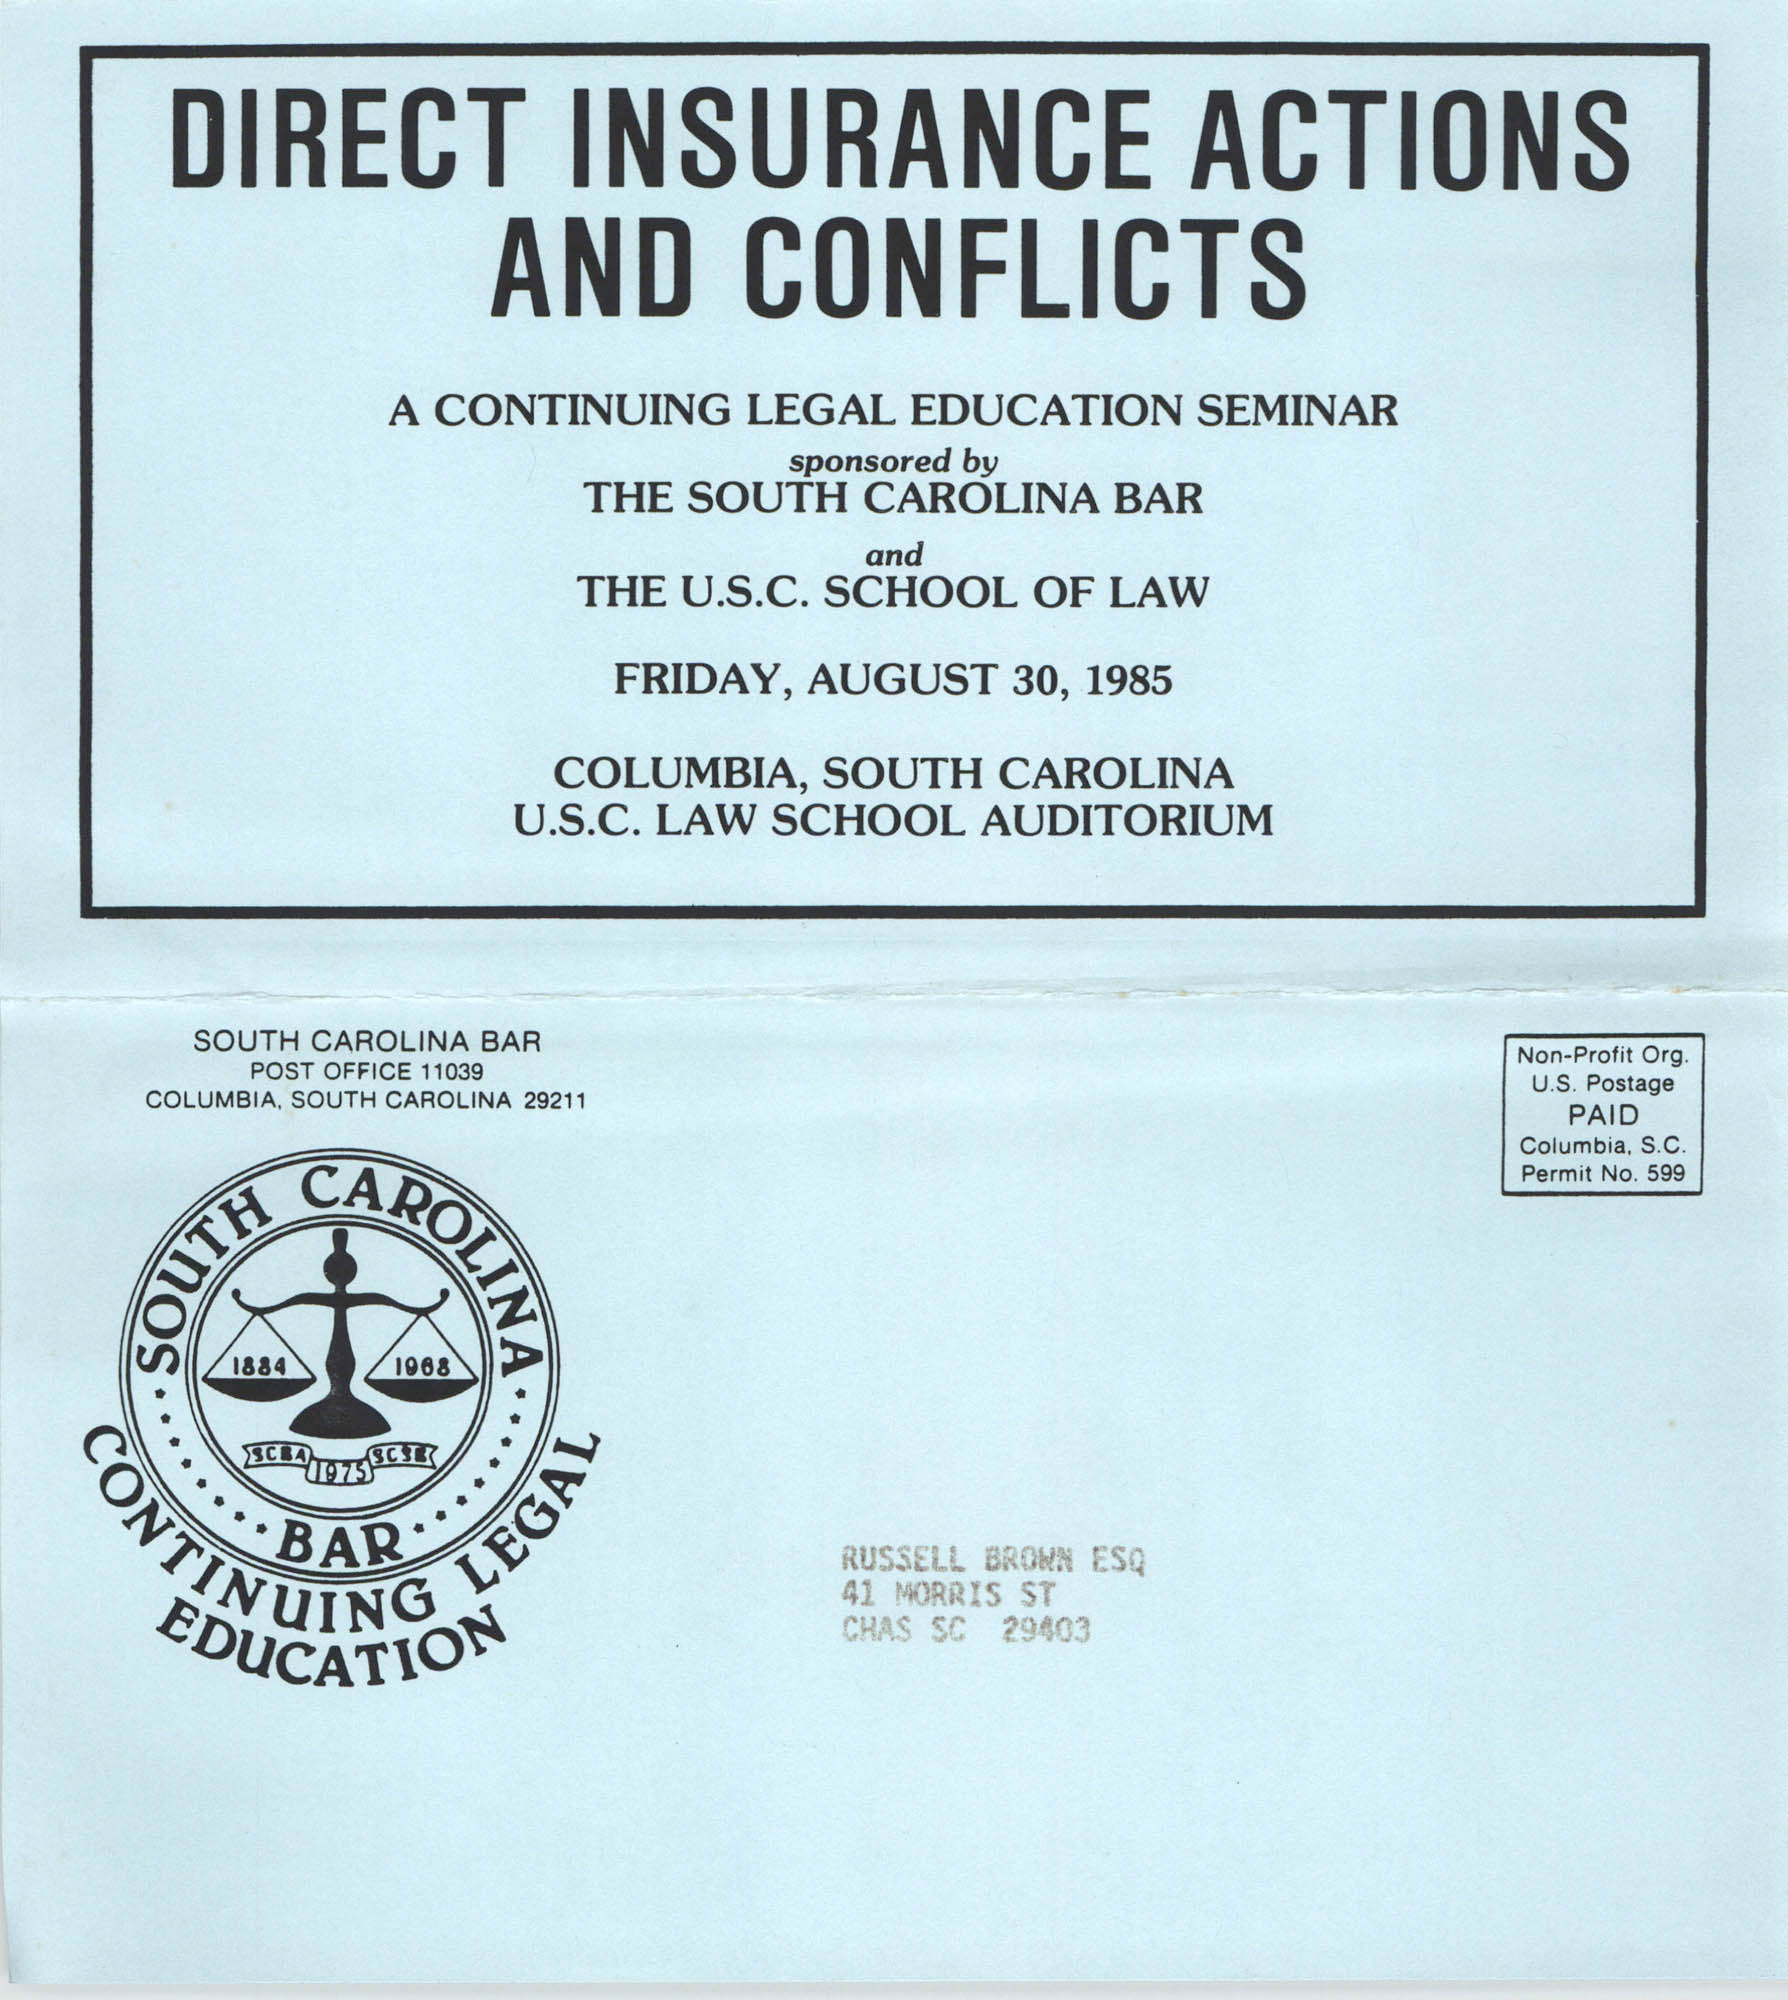 Direct Insurance Actions and Conflicts, Continuing Legal Education Seminar Pamphlet, August 30, 1985, Russell Brown